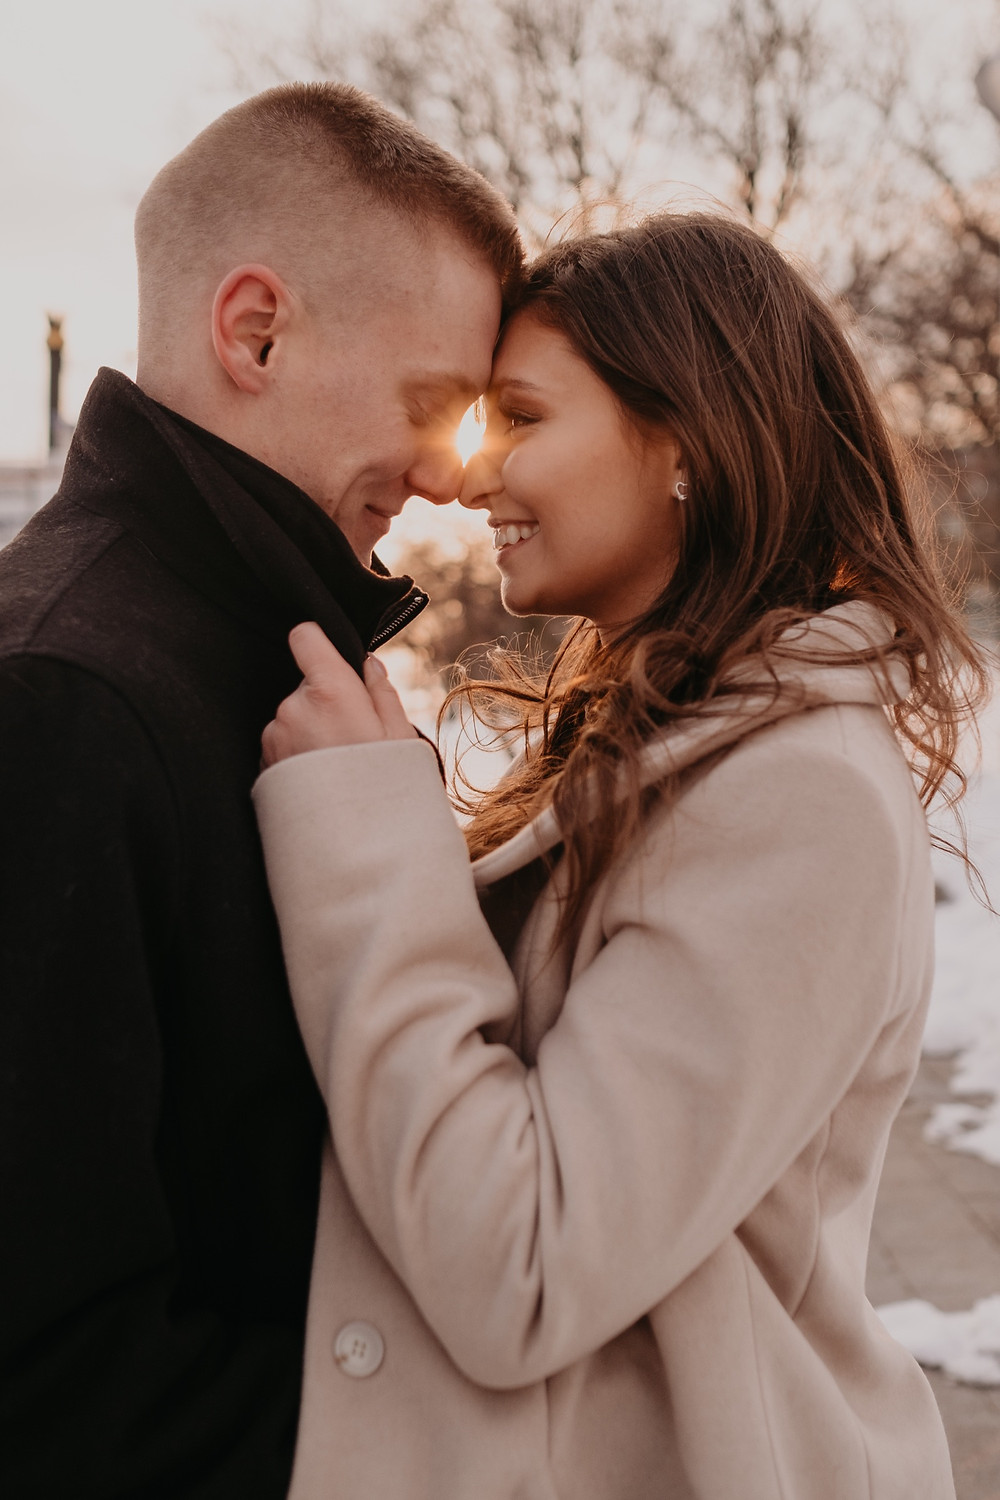 Sunset engagement session in Downtown Detroit. Photographed by Nicole Leanne Photography.